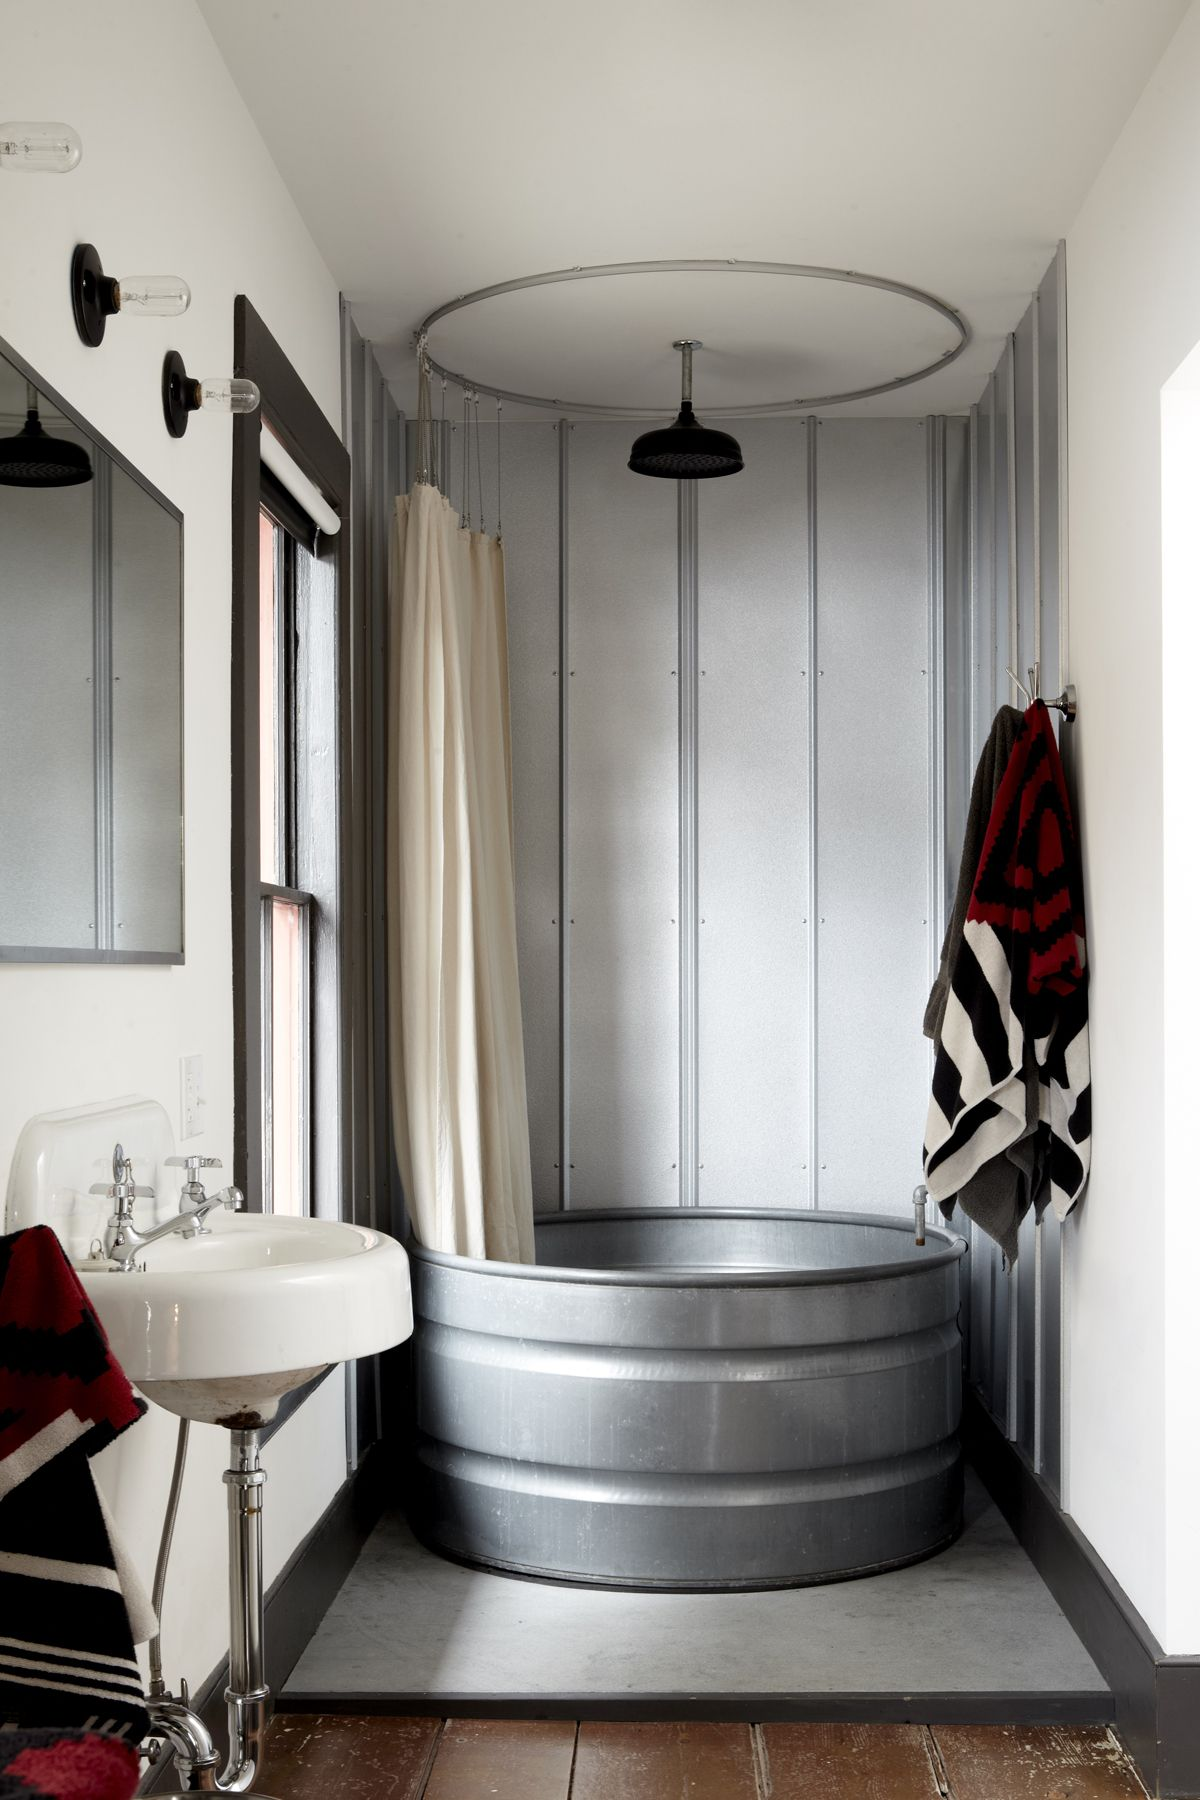 15 Genius Ways To Use Stock Tanks In Your Home And Backyard